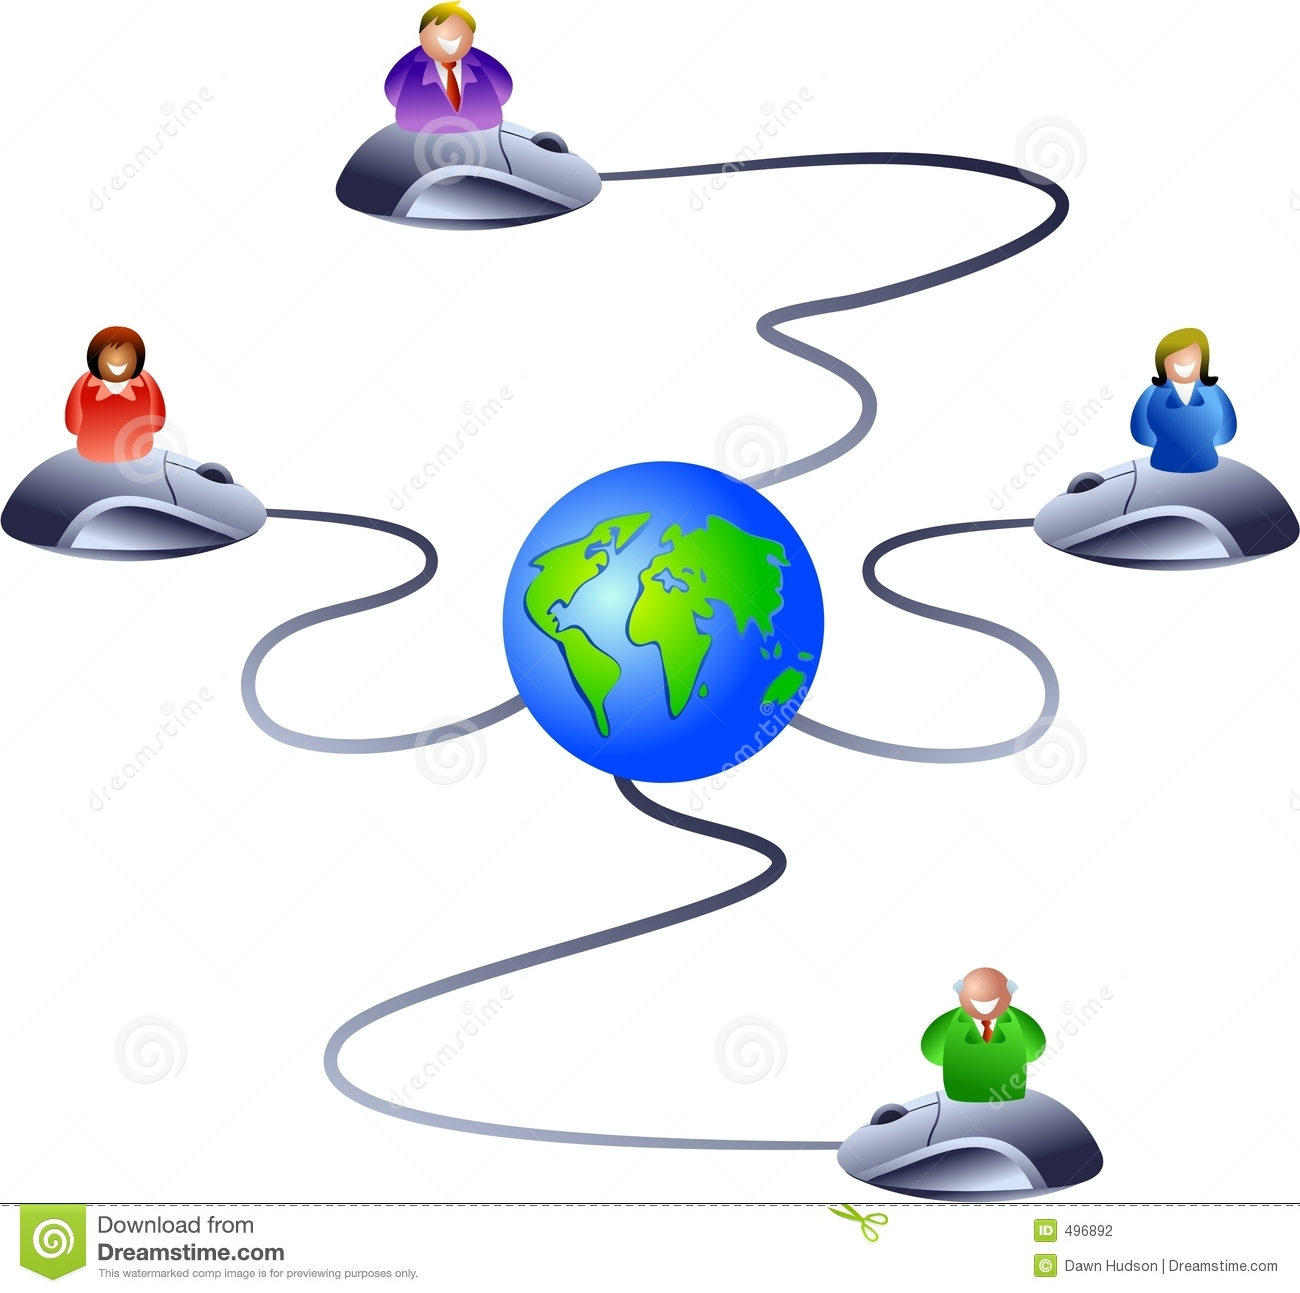 Network of business people logging onto the world wide web  icon